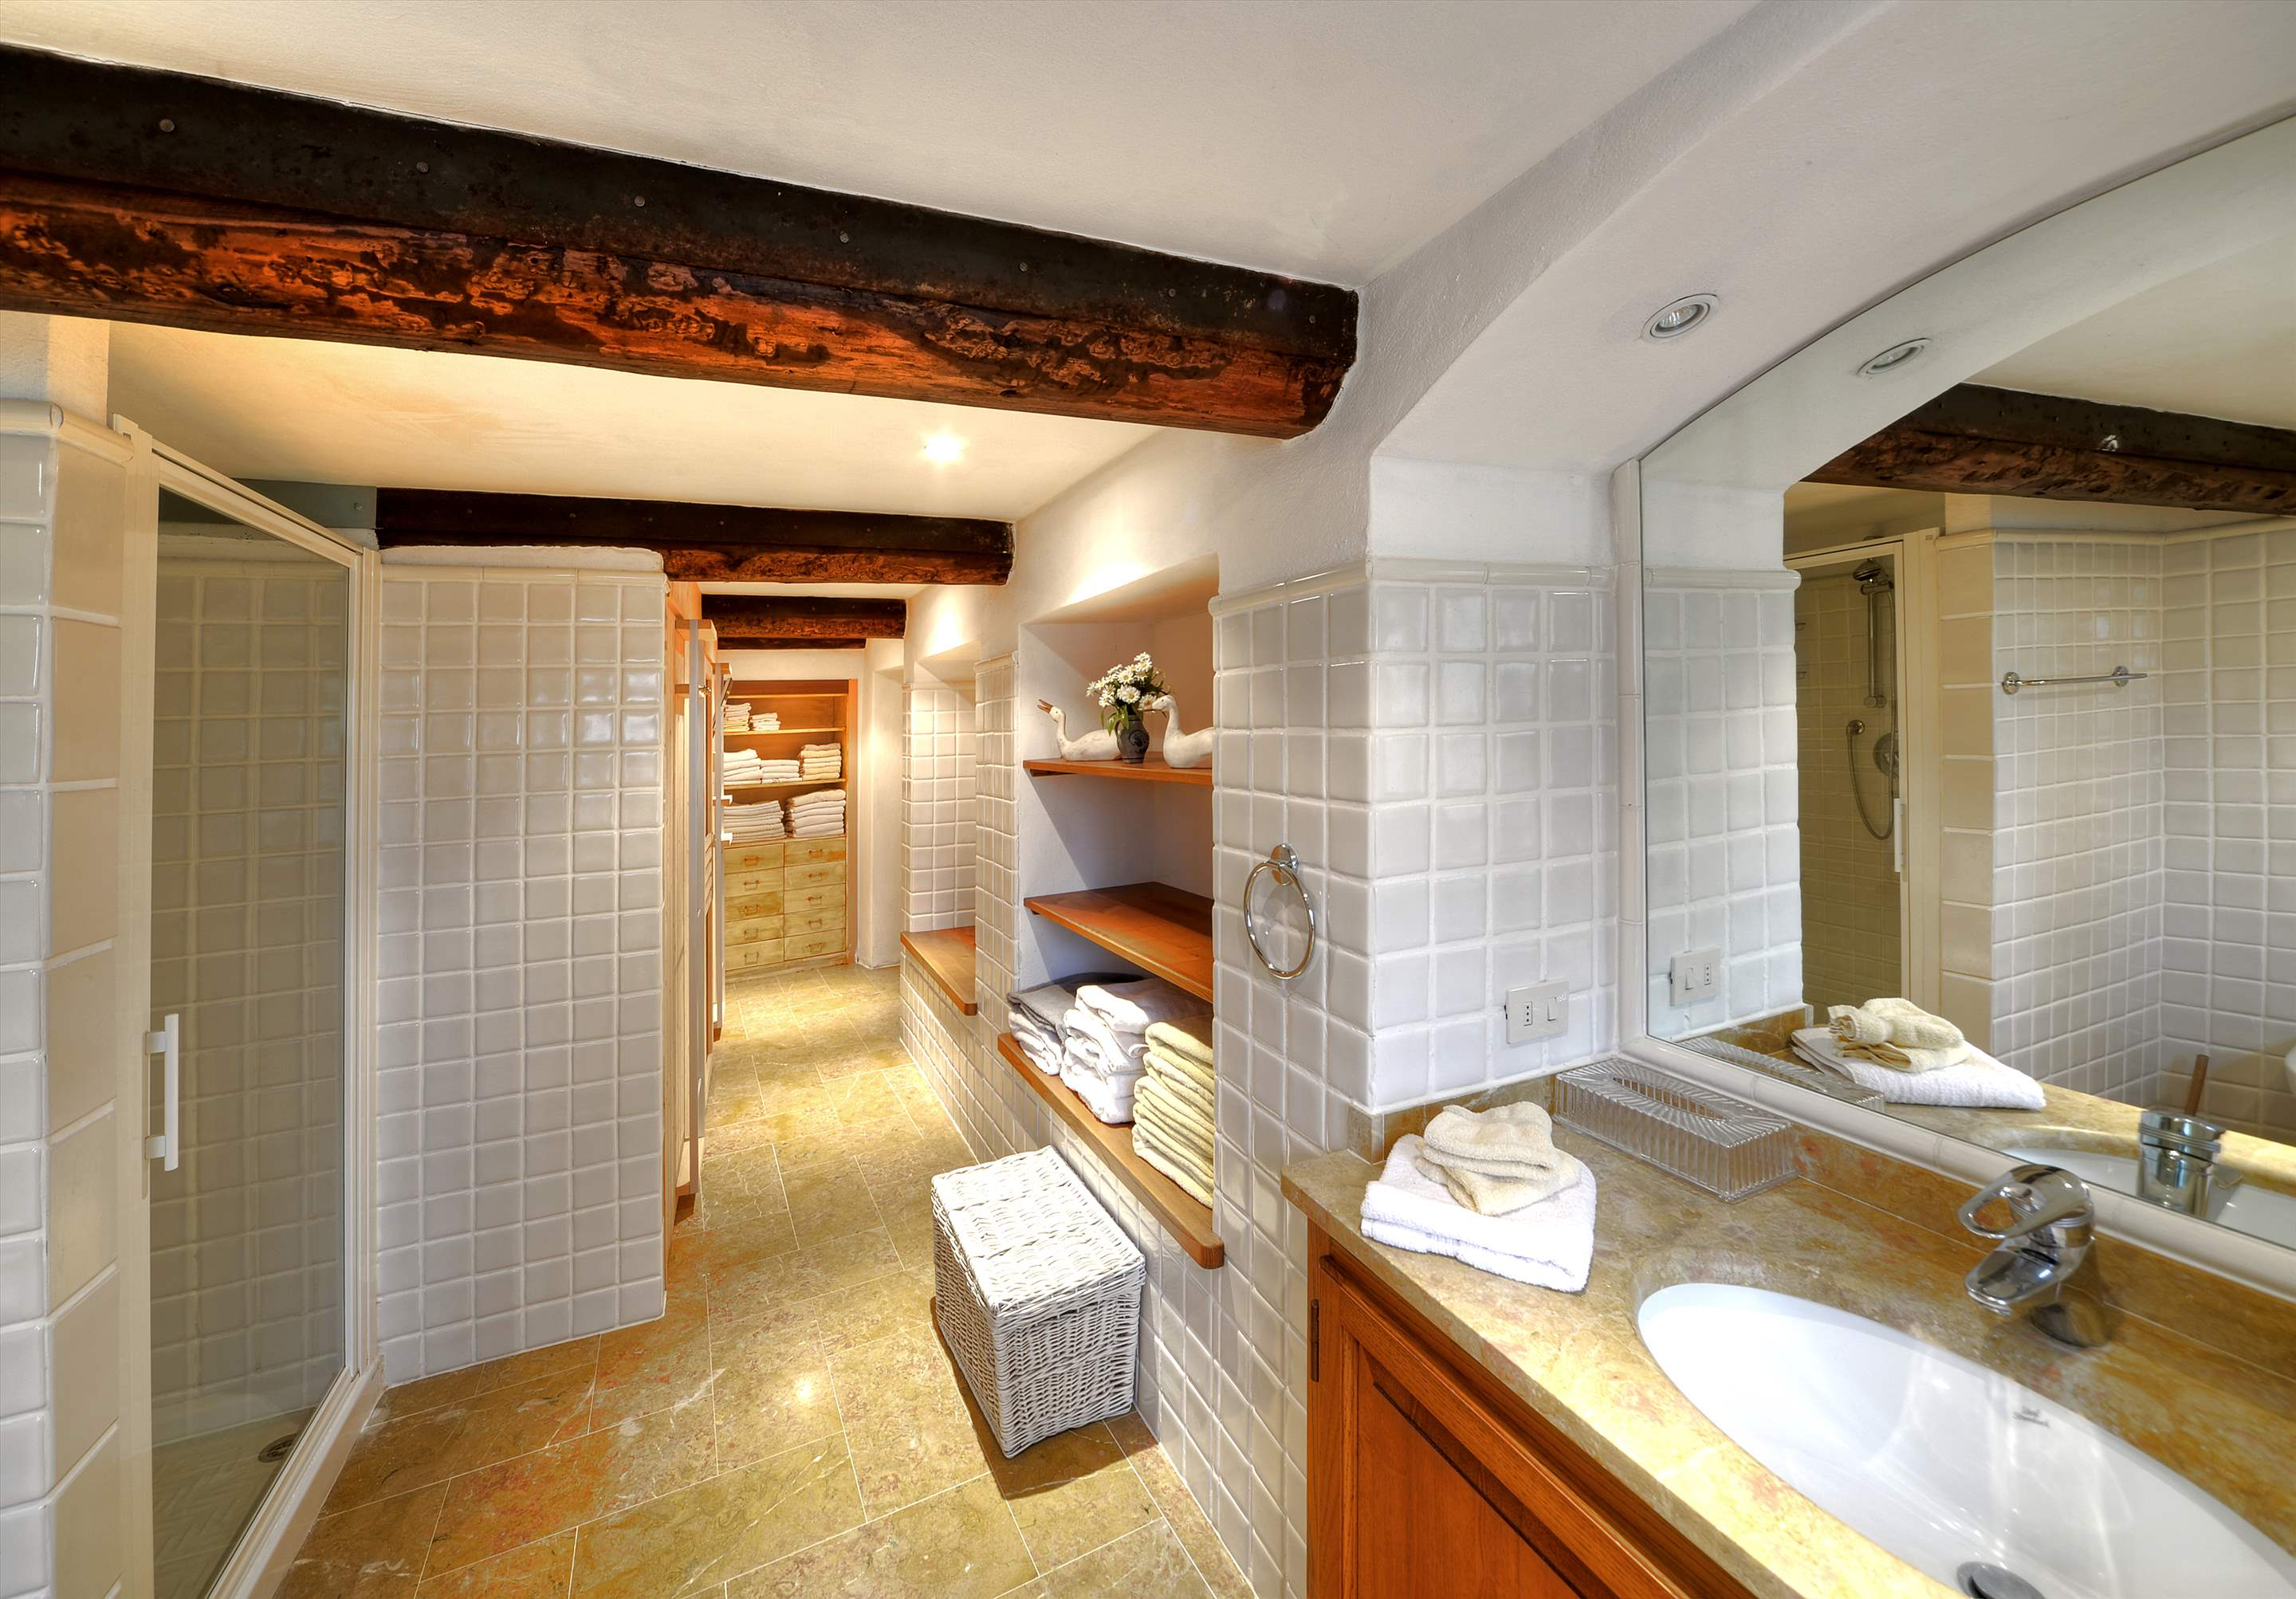 Villa Campana, 5 bedroom villa in Chianti & Countryside, Tuscany Photo #18